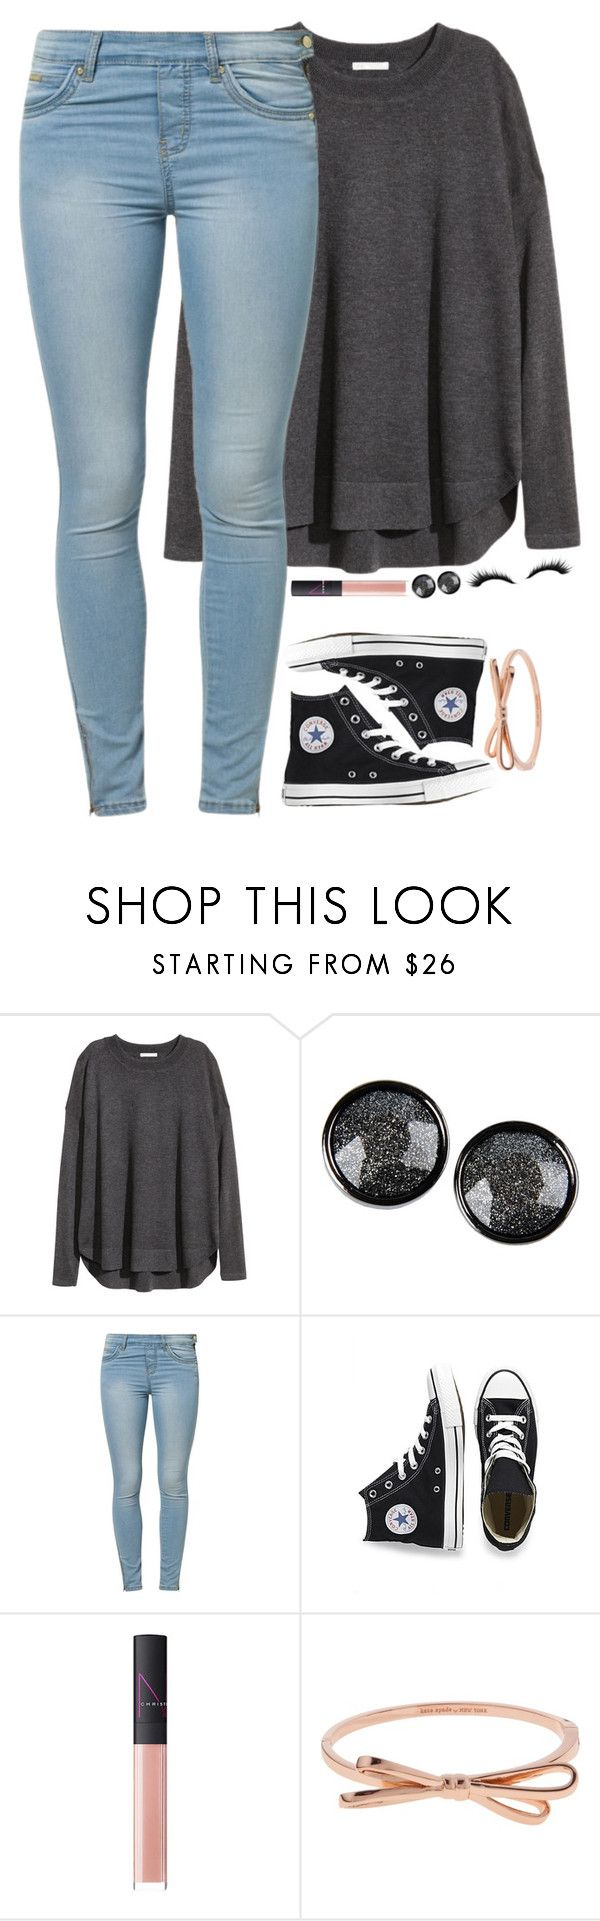 """QOTD"" by meljordrum ❤ liked on Polyvore featuring H&M, Marc by Marc Jacobs, Jane Norman, Converse, NARS Cosmetics and Kate Spade"